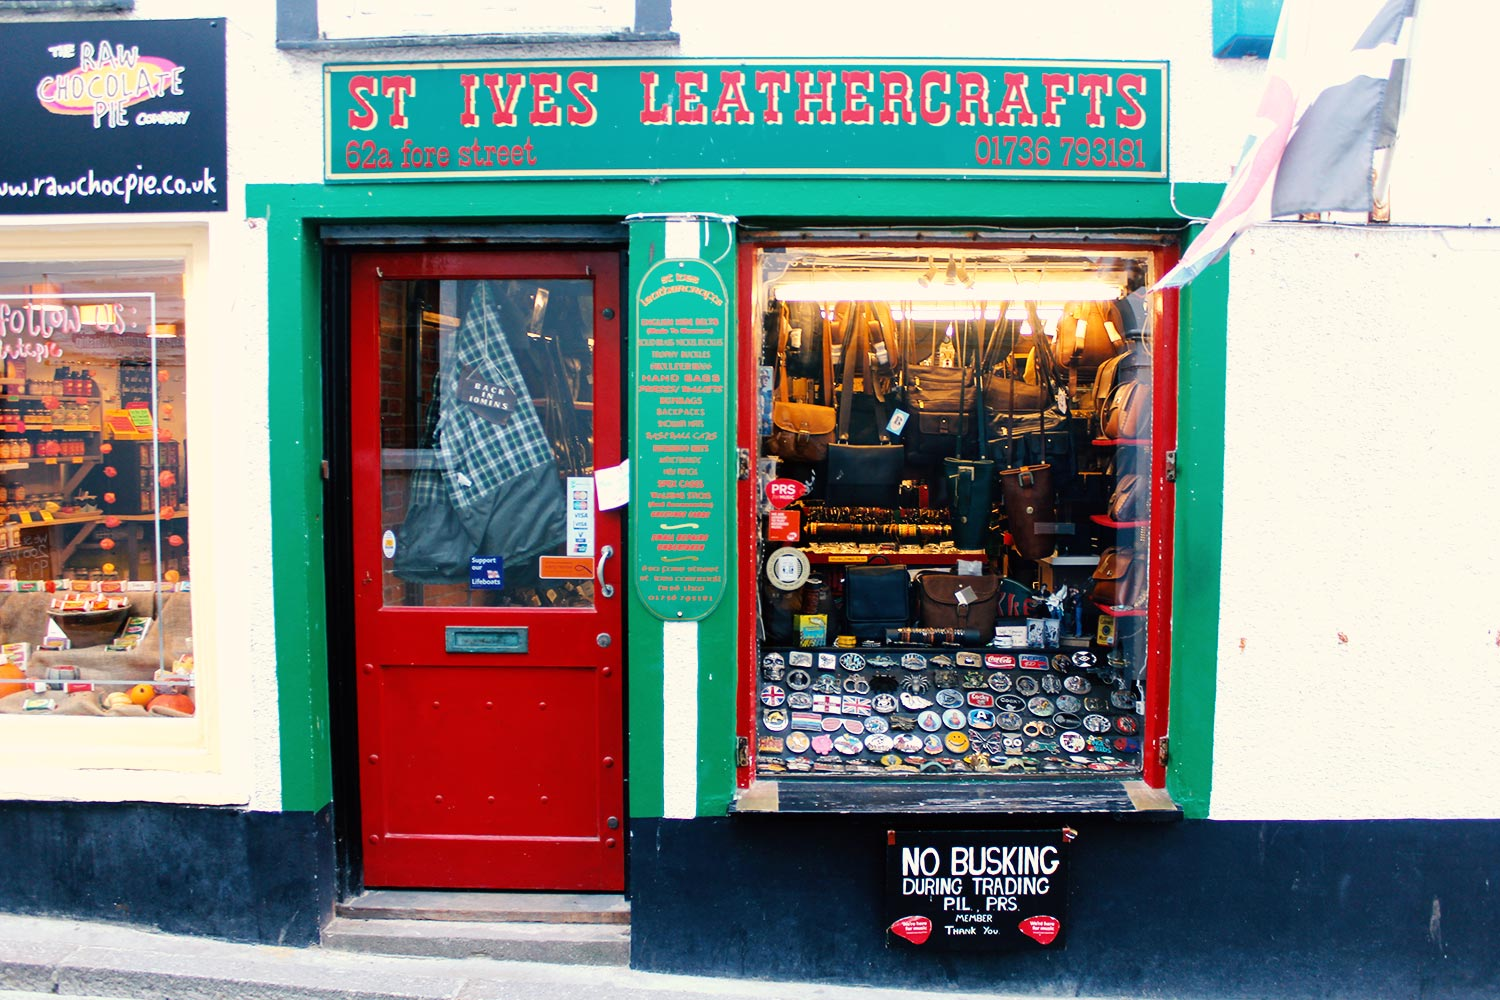 St Ives Leathercrafts